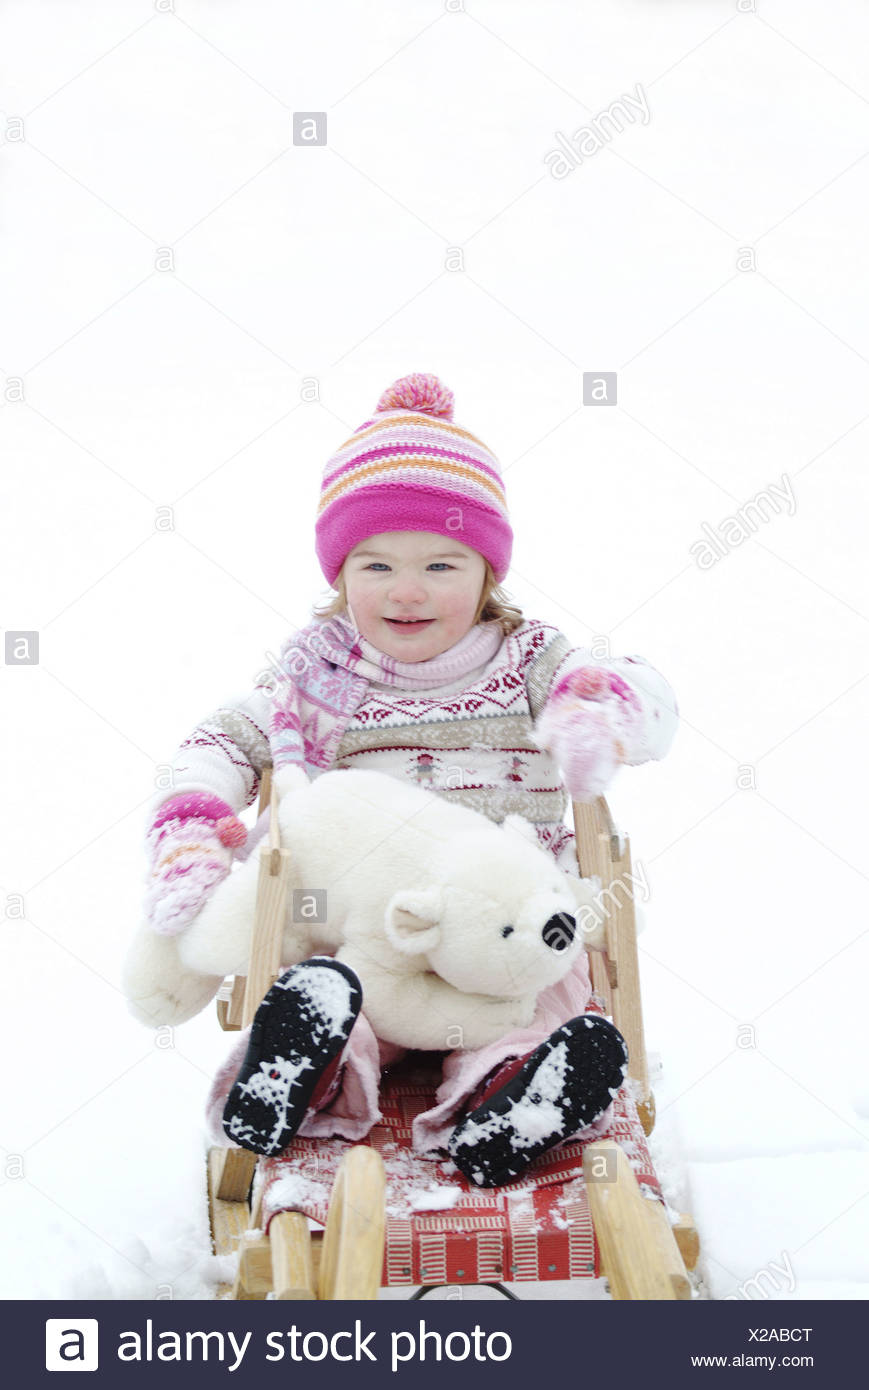 Child girls winter-clothing cheerfully material-animal 'polar bear' sled snow people toddler 2-4 years cap rope-cap headgear - Stock Image